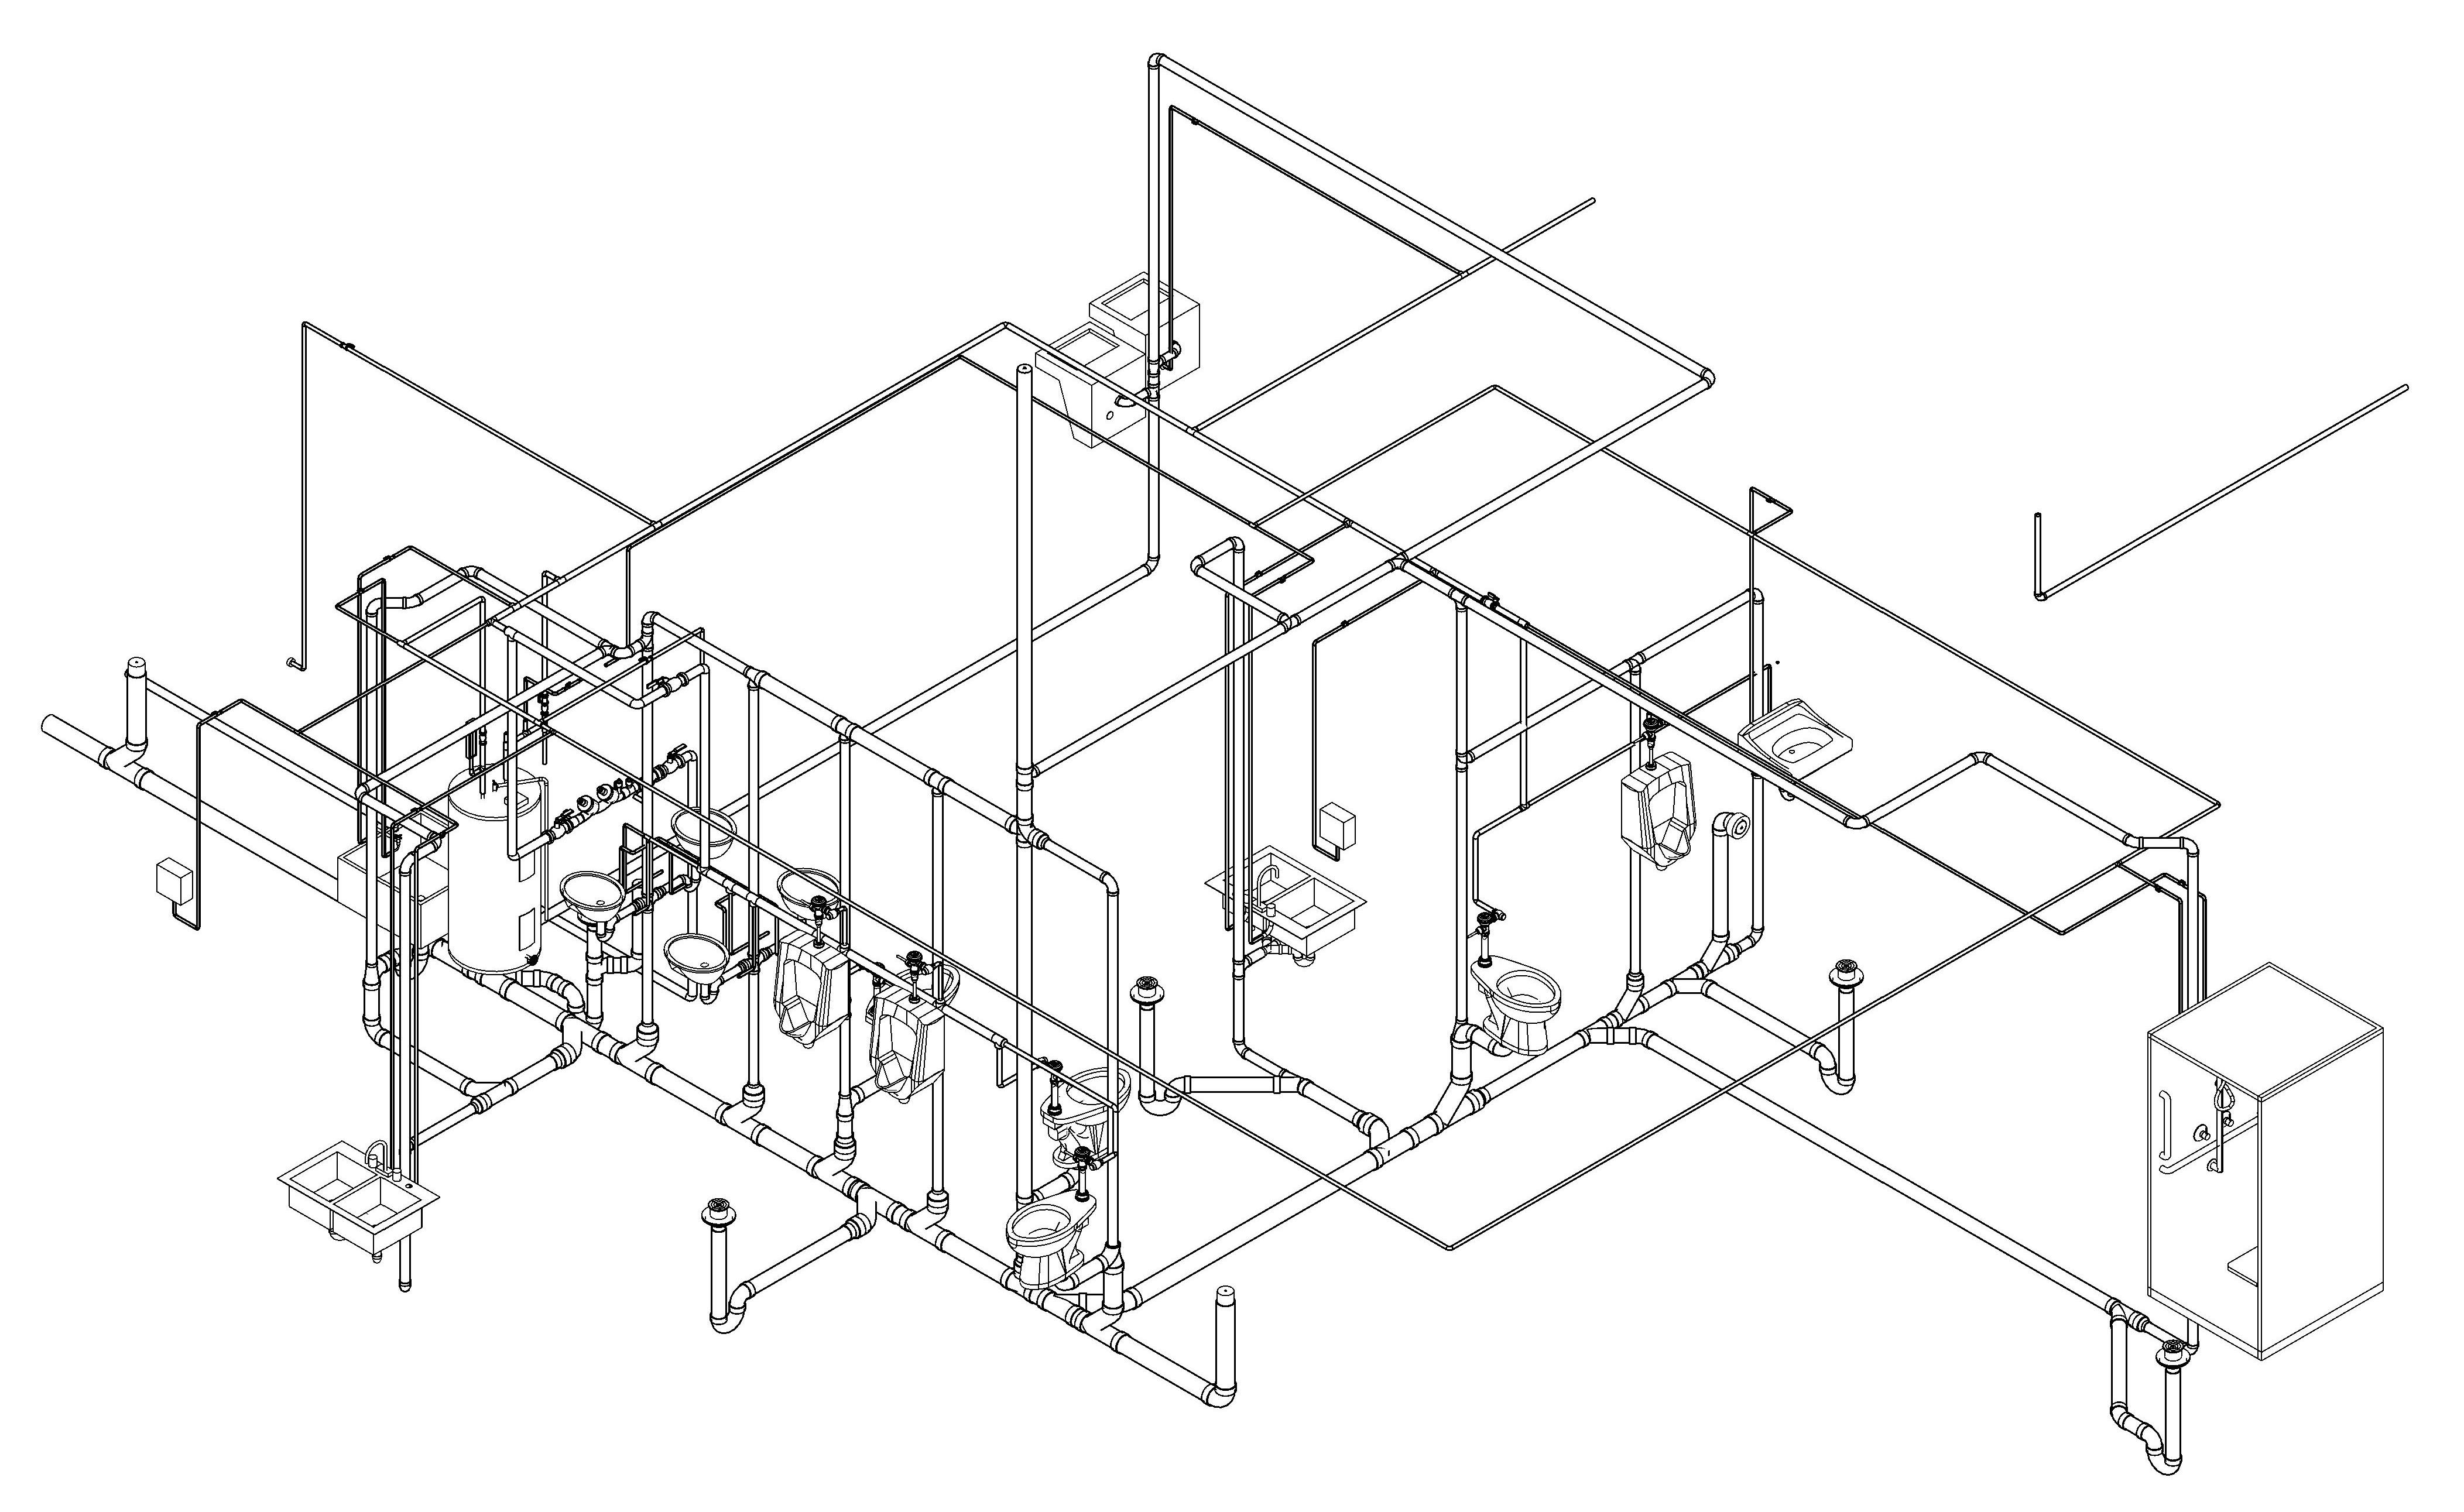 Isometric Plumbing Drawing At Paintingvalley